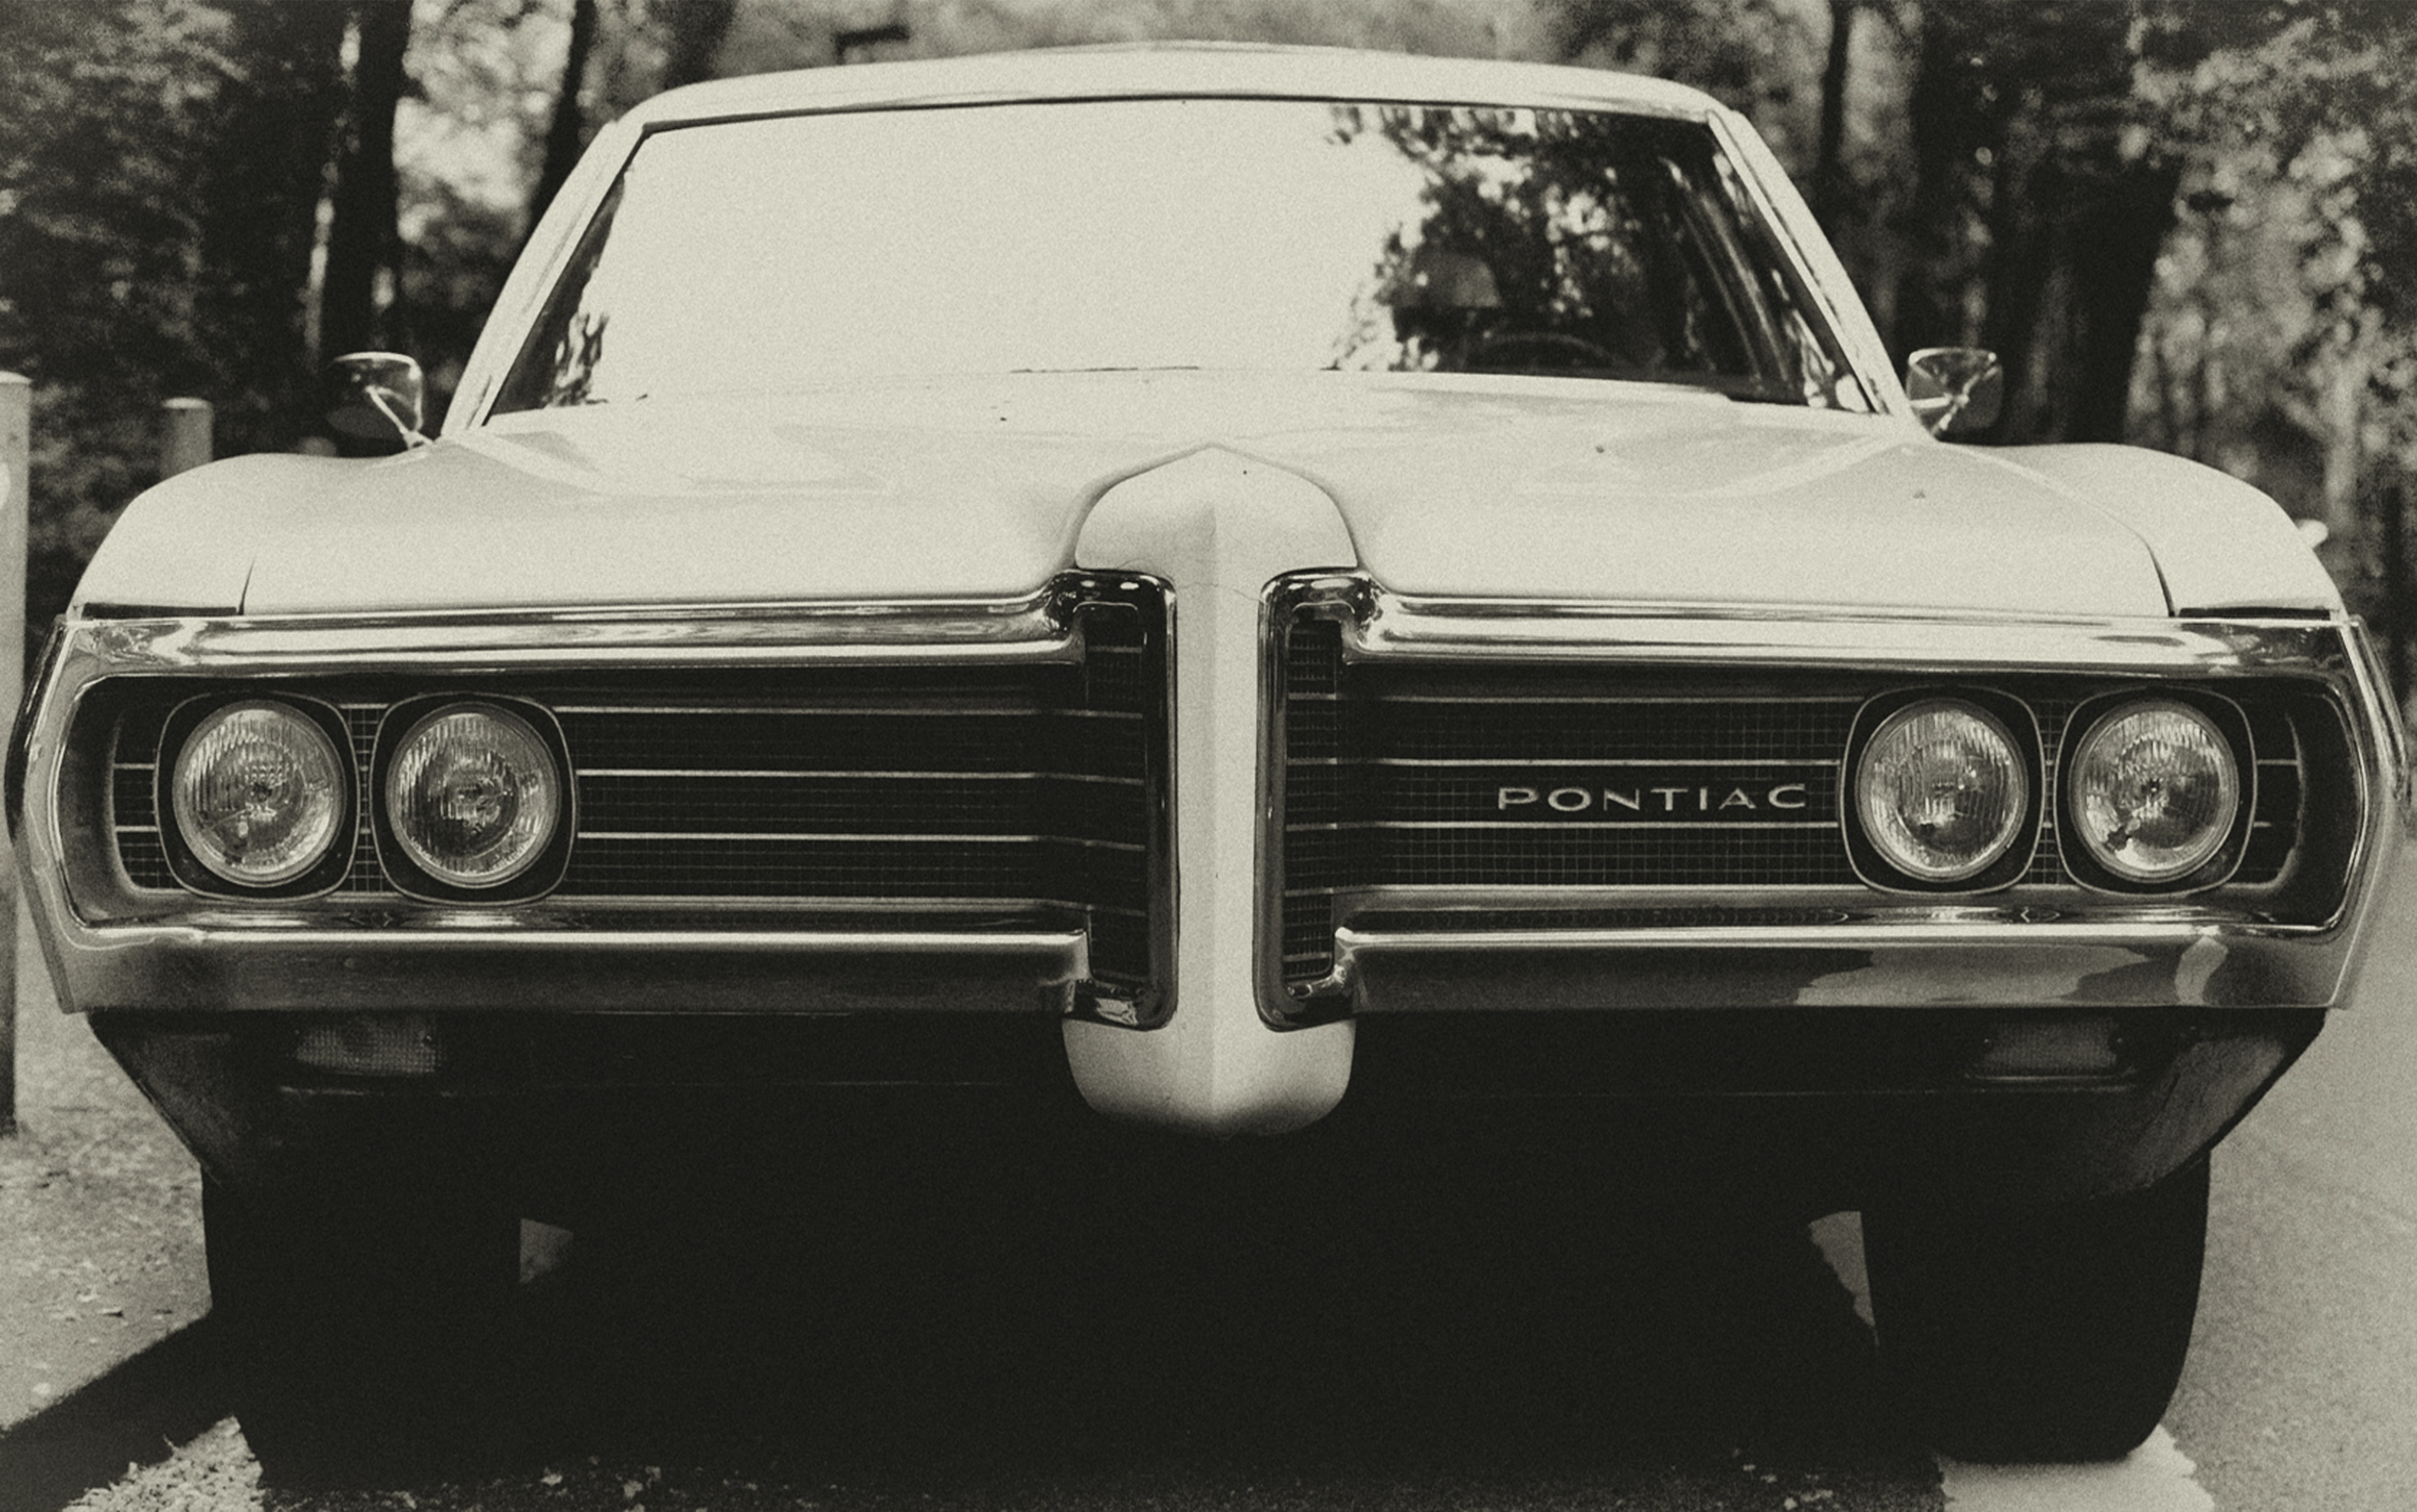 Front view of a vintage Pontiac in black and white.